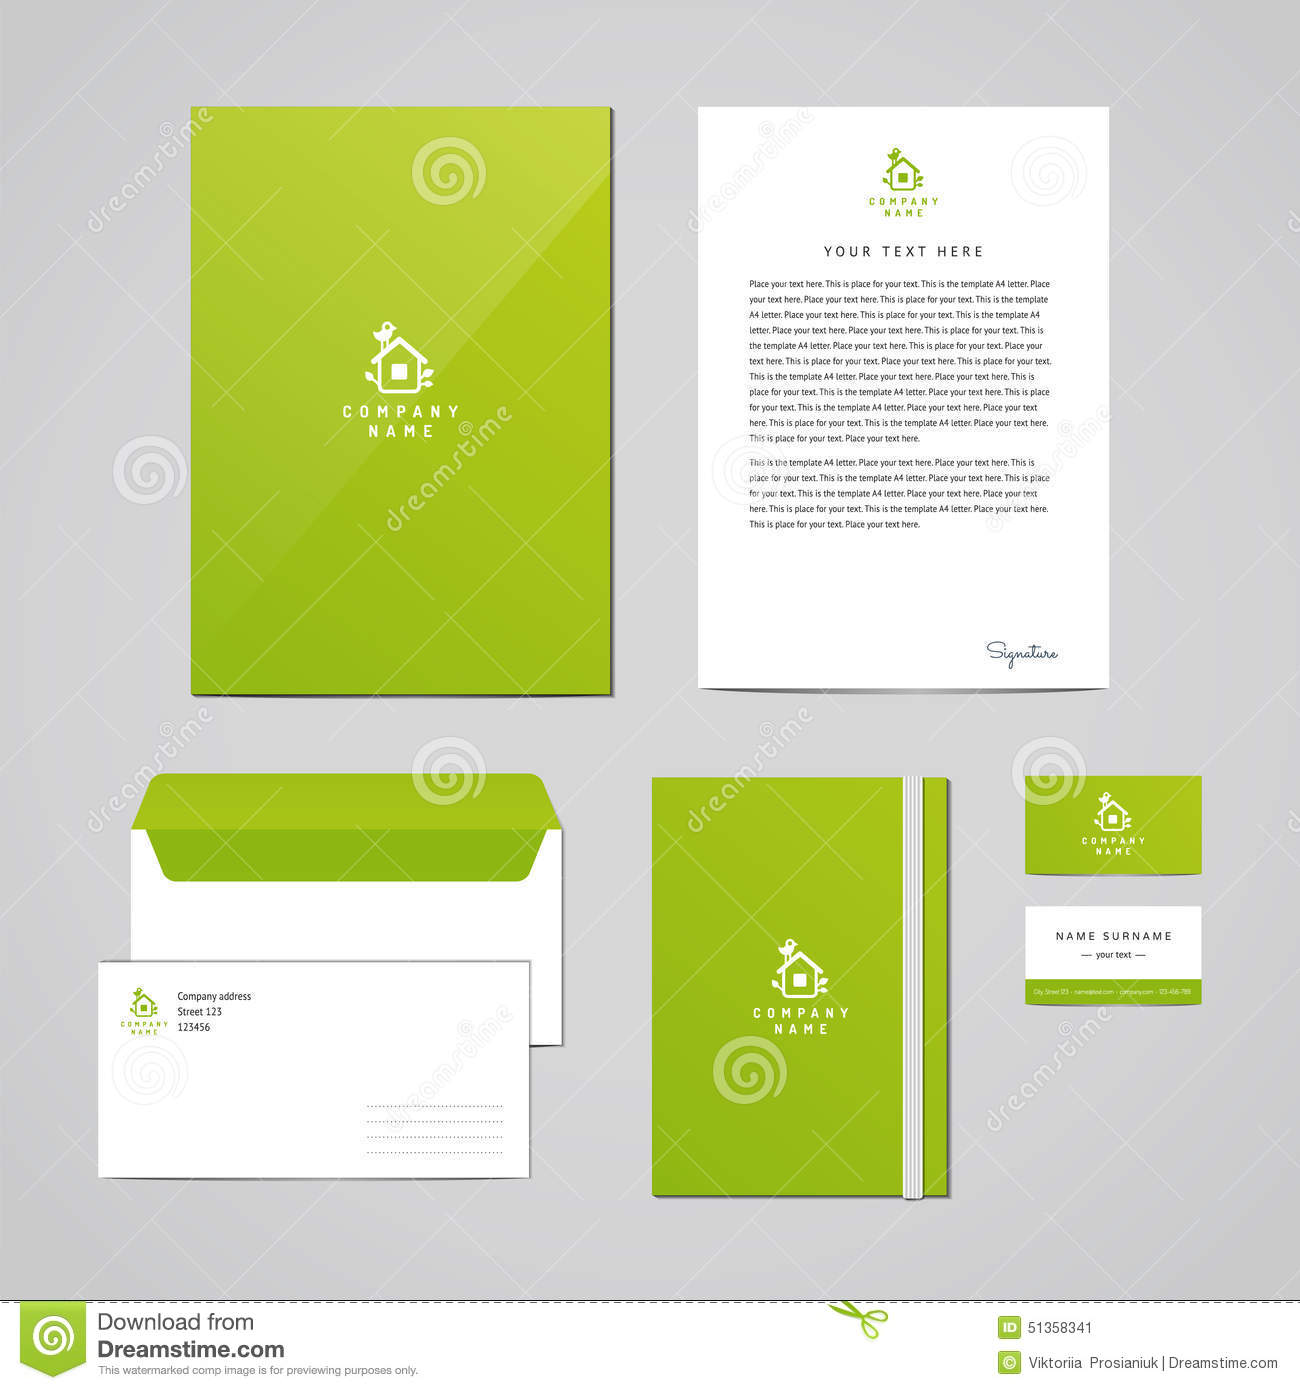 Corporate Graphic Design Corporate Identity Eco Design Template Documentation For Business